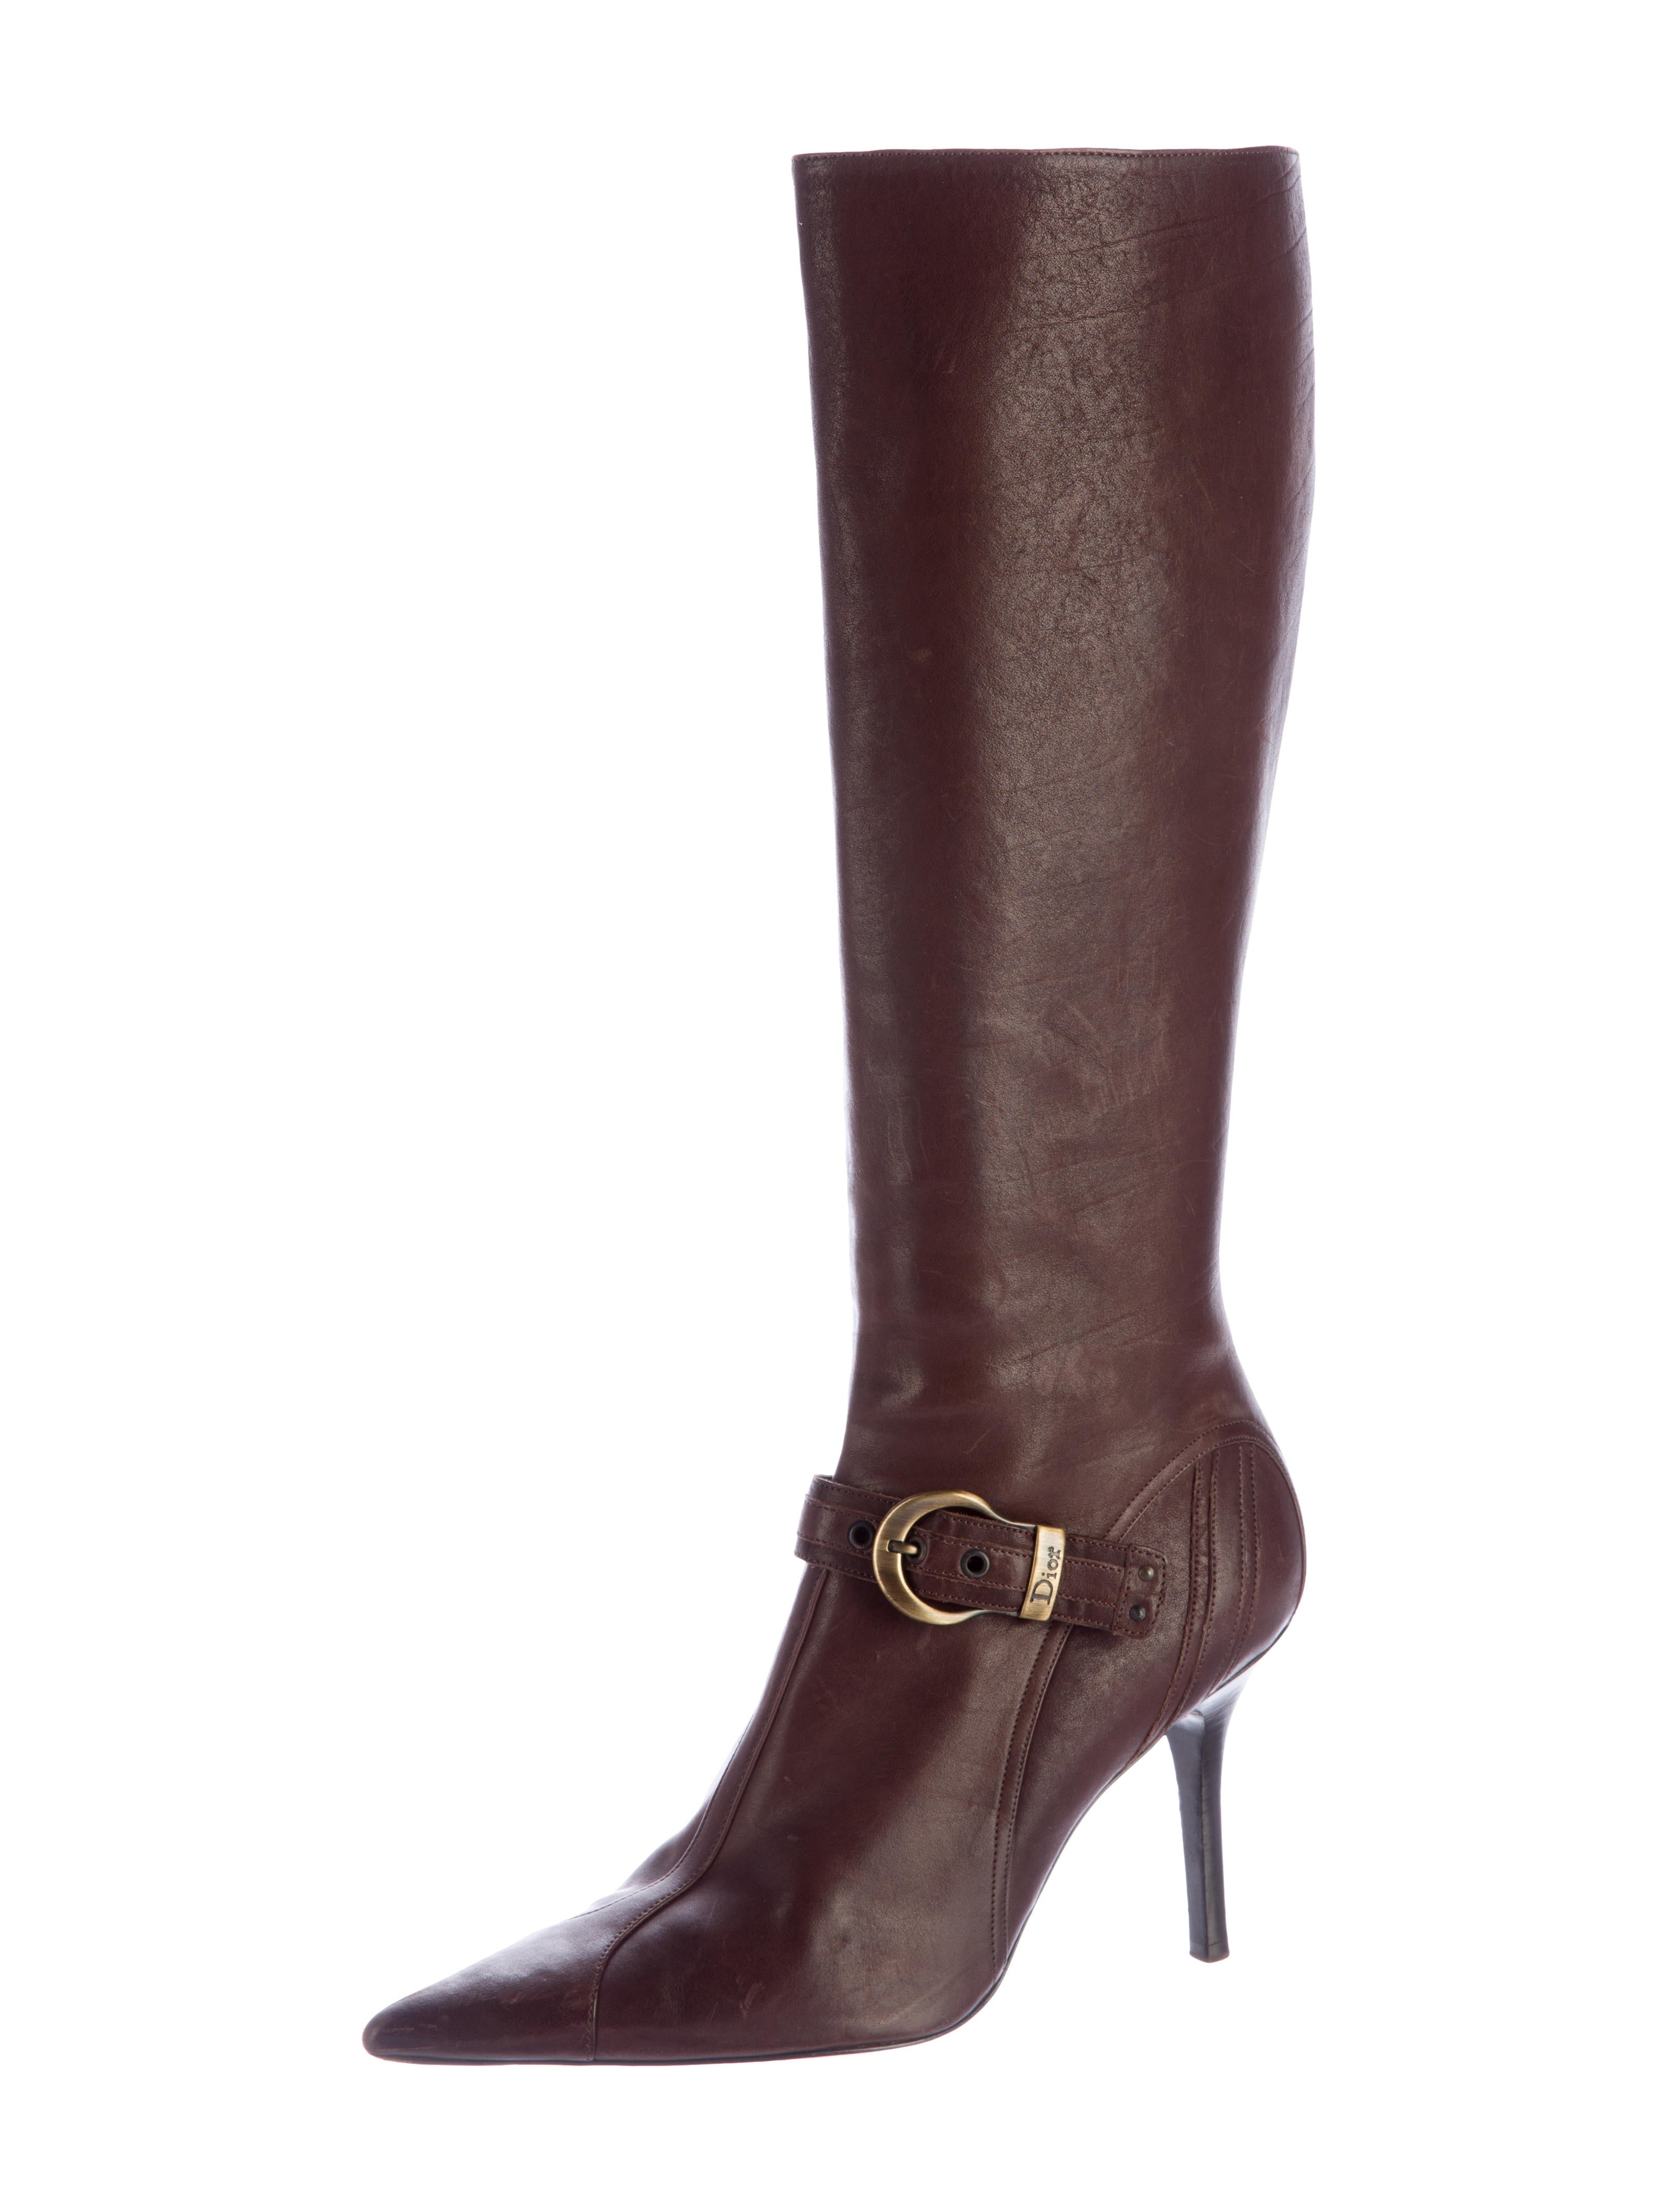 christian buckle accented knee high boots shoes